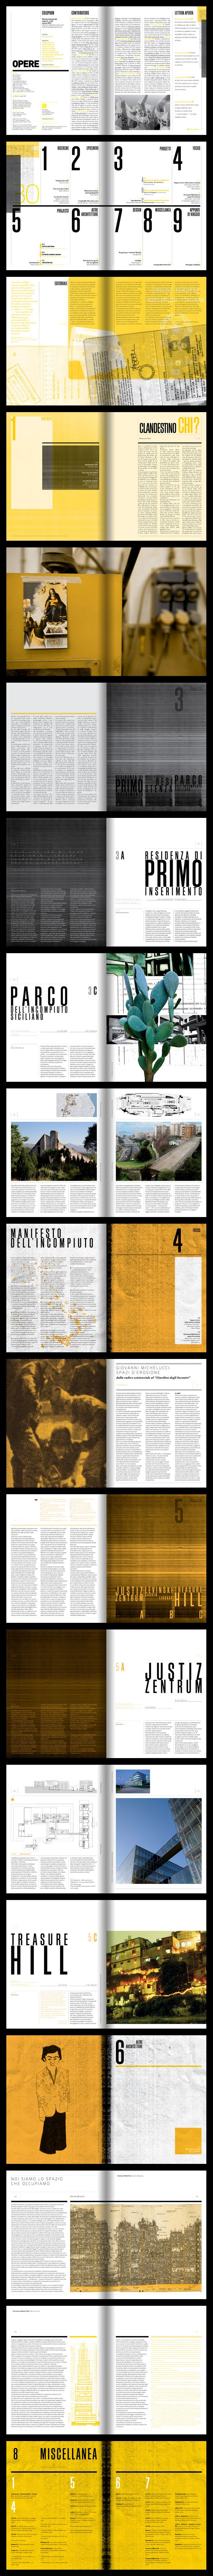 OPERE 30, Città clandestina  With the issue 30 D'Apostrophe continues working on the art direction, the graphic design and the layout of the three-monthly Tuscan architecture magazine. The monographic issue deals with themes about the relationship with the city, architecture and territory.   http://d-apostrophe.com/34491/545796/graphics/opere-30-citta-clandestina